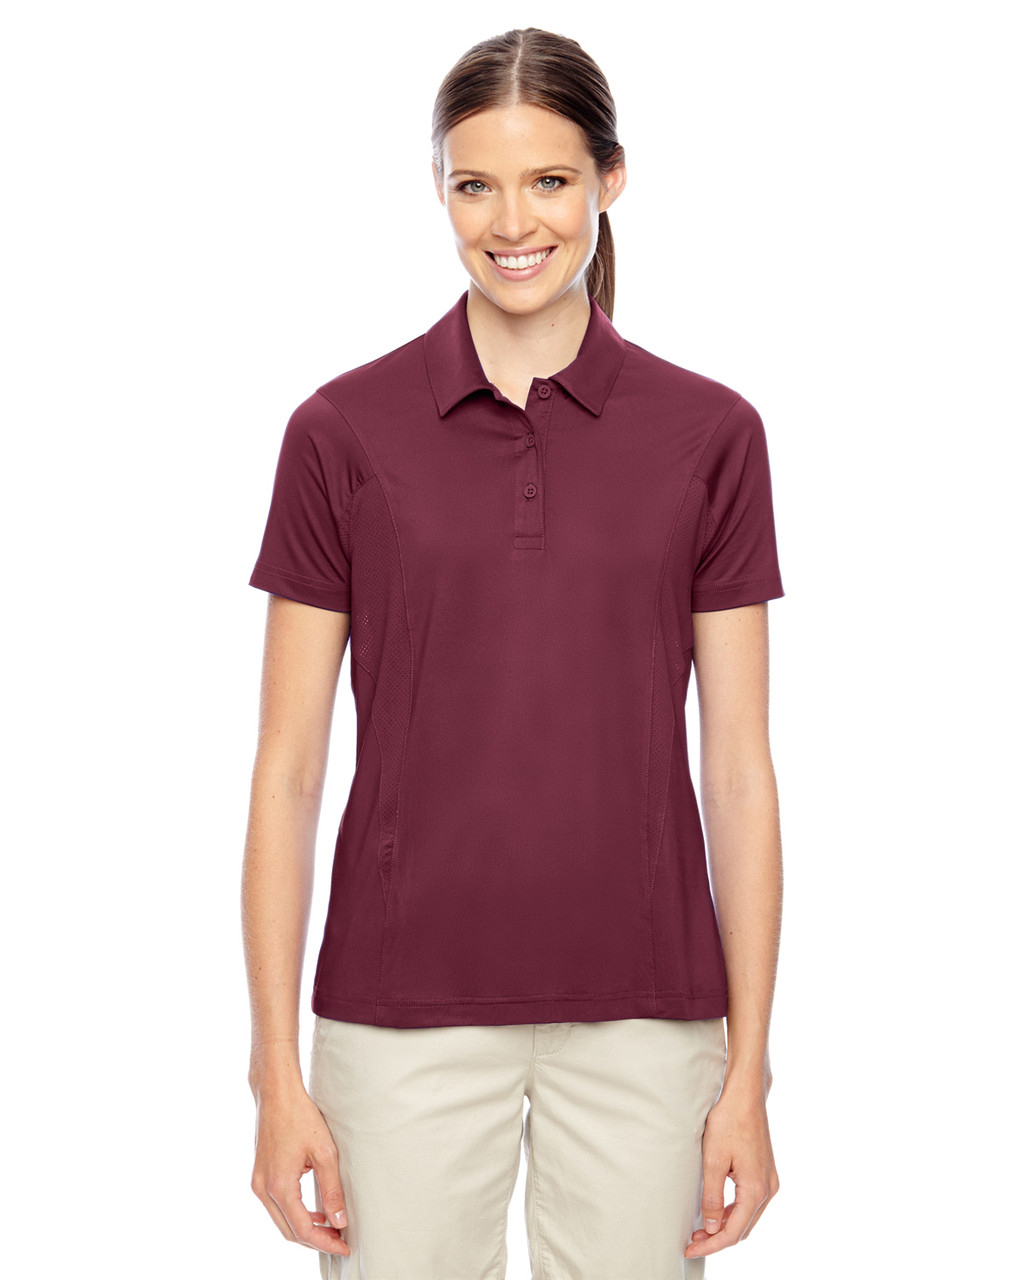 Maroon - TT20W Team 365 Charger Performance Polo Shirt